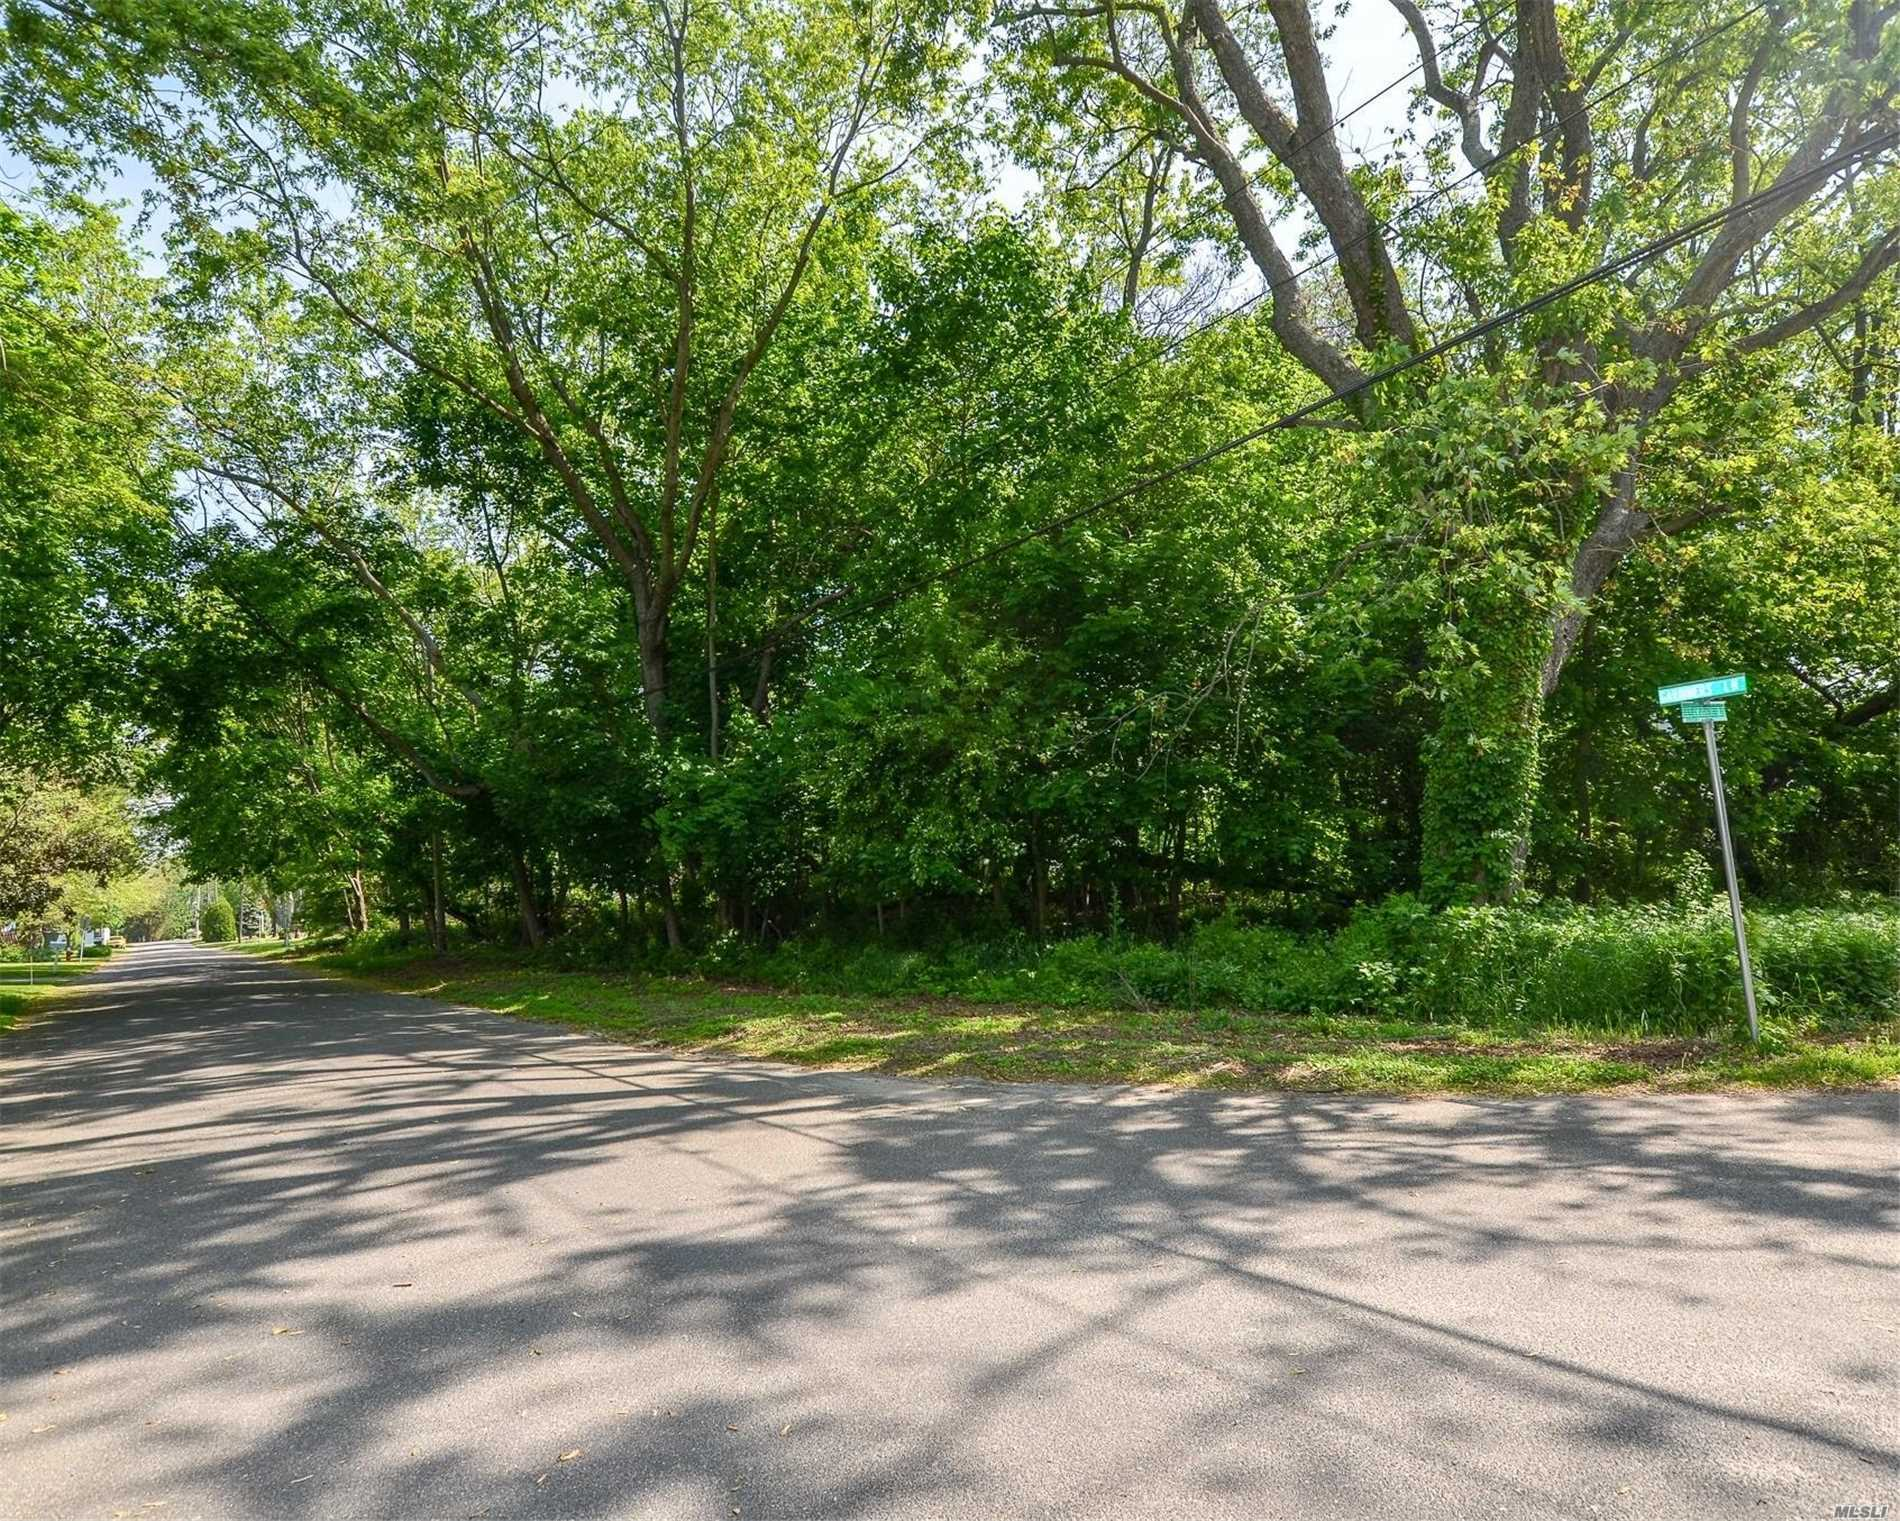 Build Your Dream Home! Wooded Lot Set In Beautiful Neighborhood In Southold, Close To Village, Beaches, Boating And All The Hamlet Has To Offer.